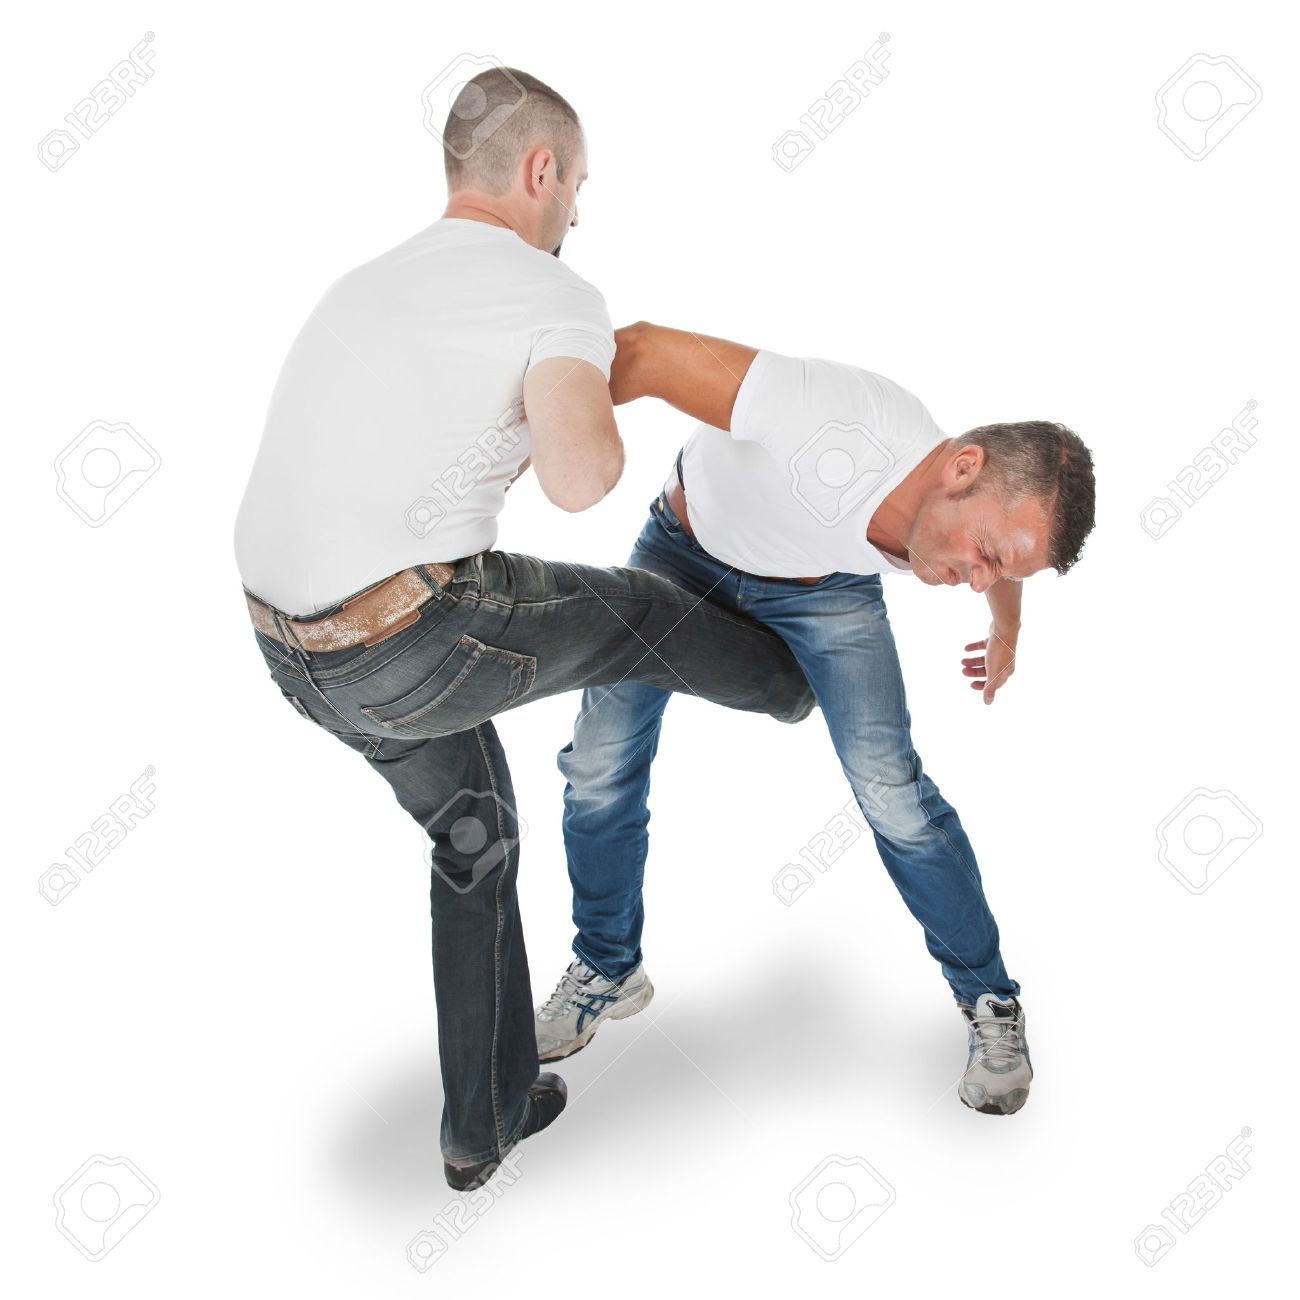 Man defending an attack from another man, selfdefense, kicking in groin, isolated on white Stock Photo - 22875404